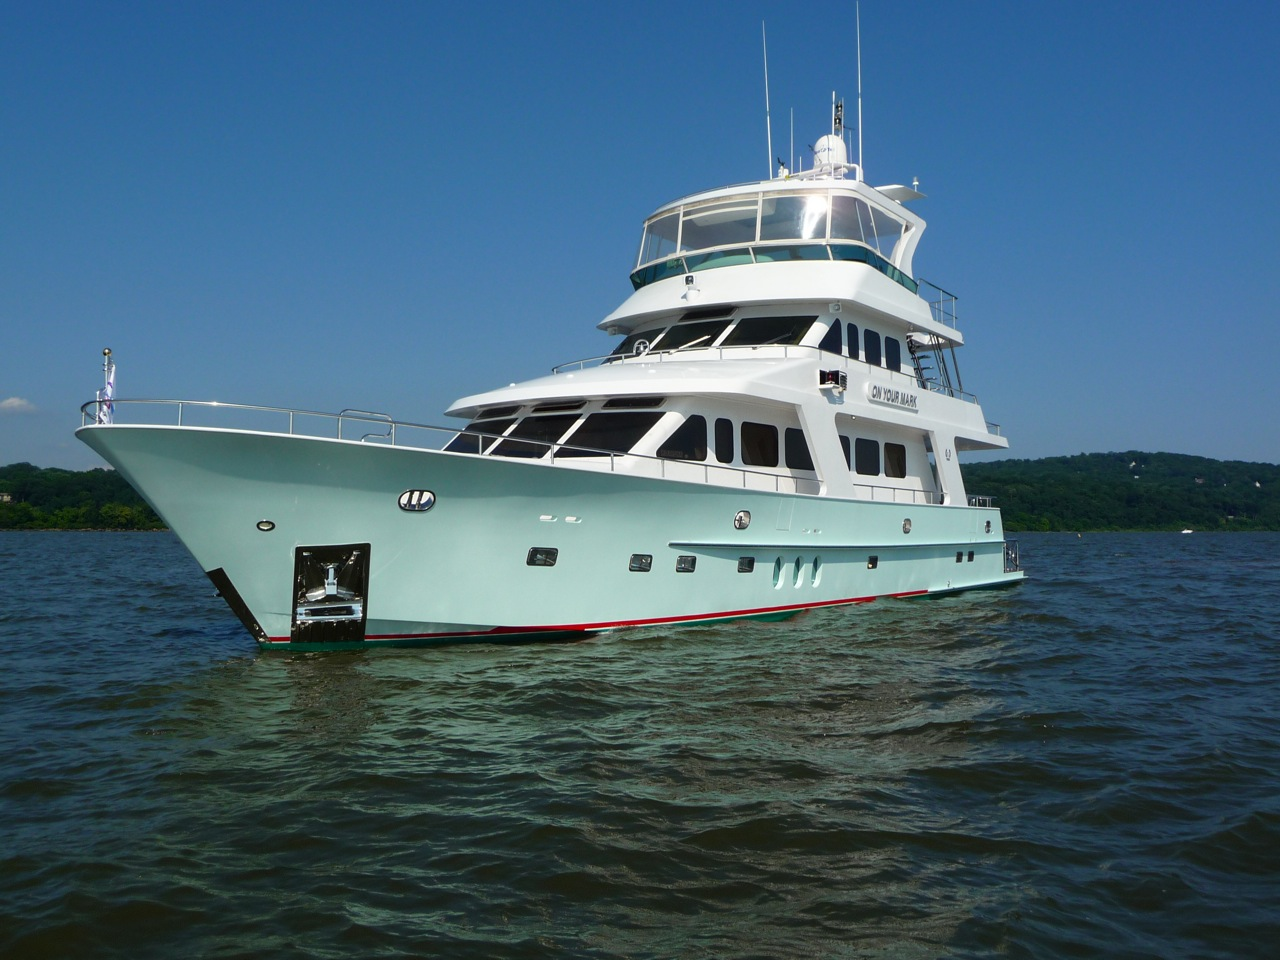 Before photo. Brand new never titled 90' pilothouse MY. Insurance company made him whole.